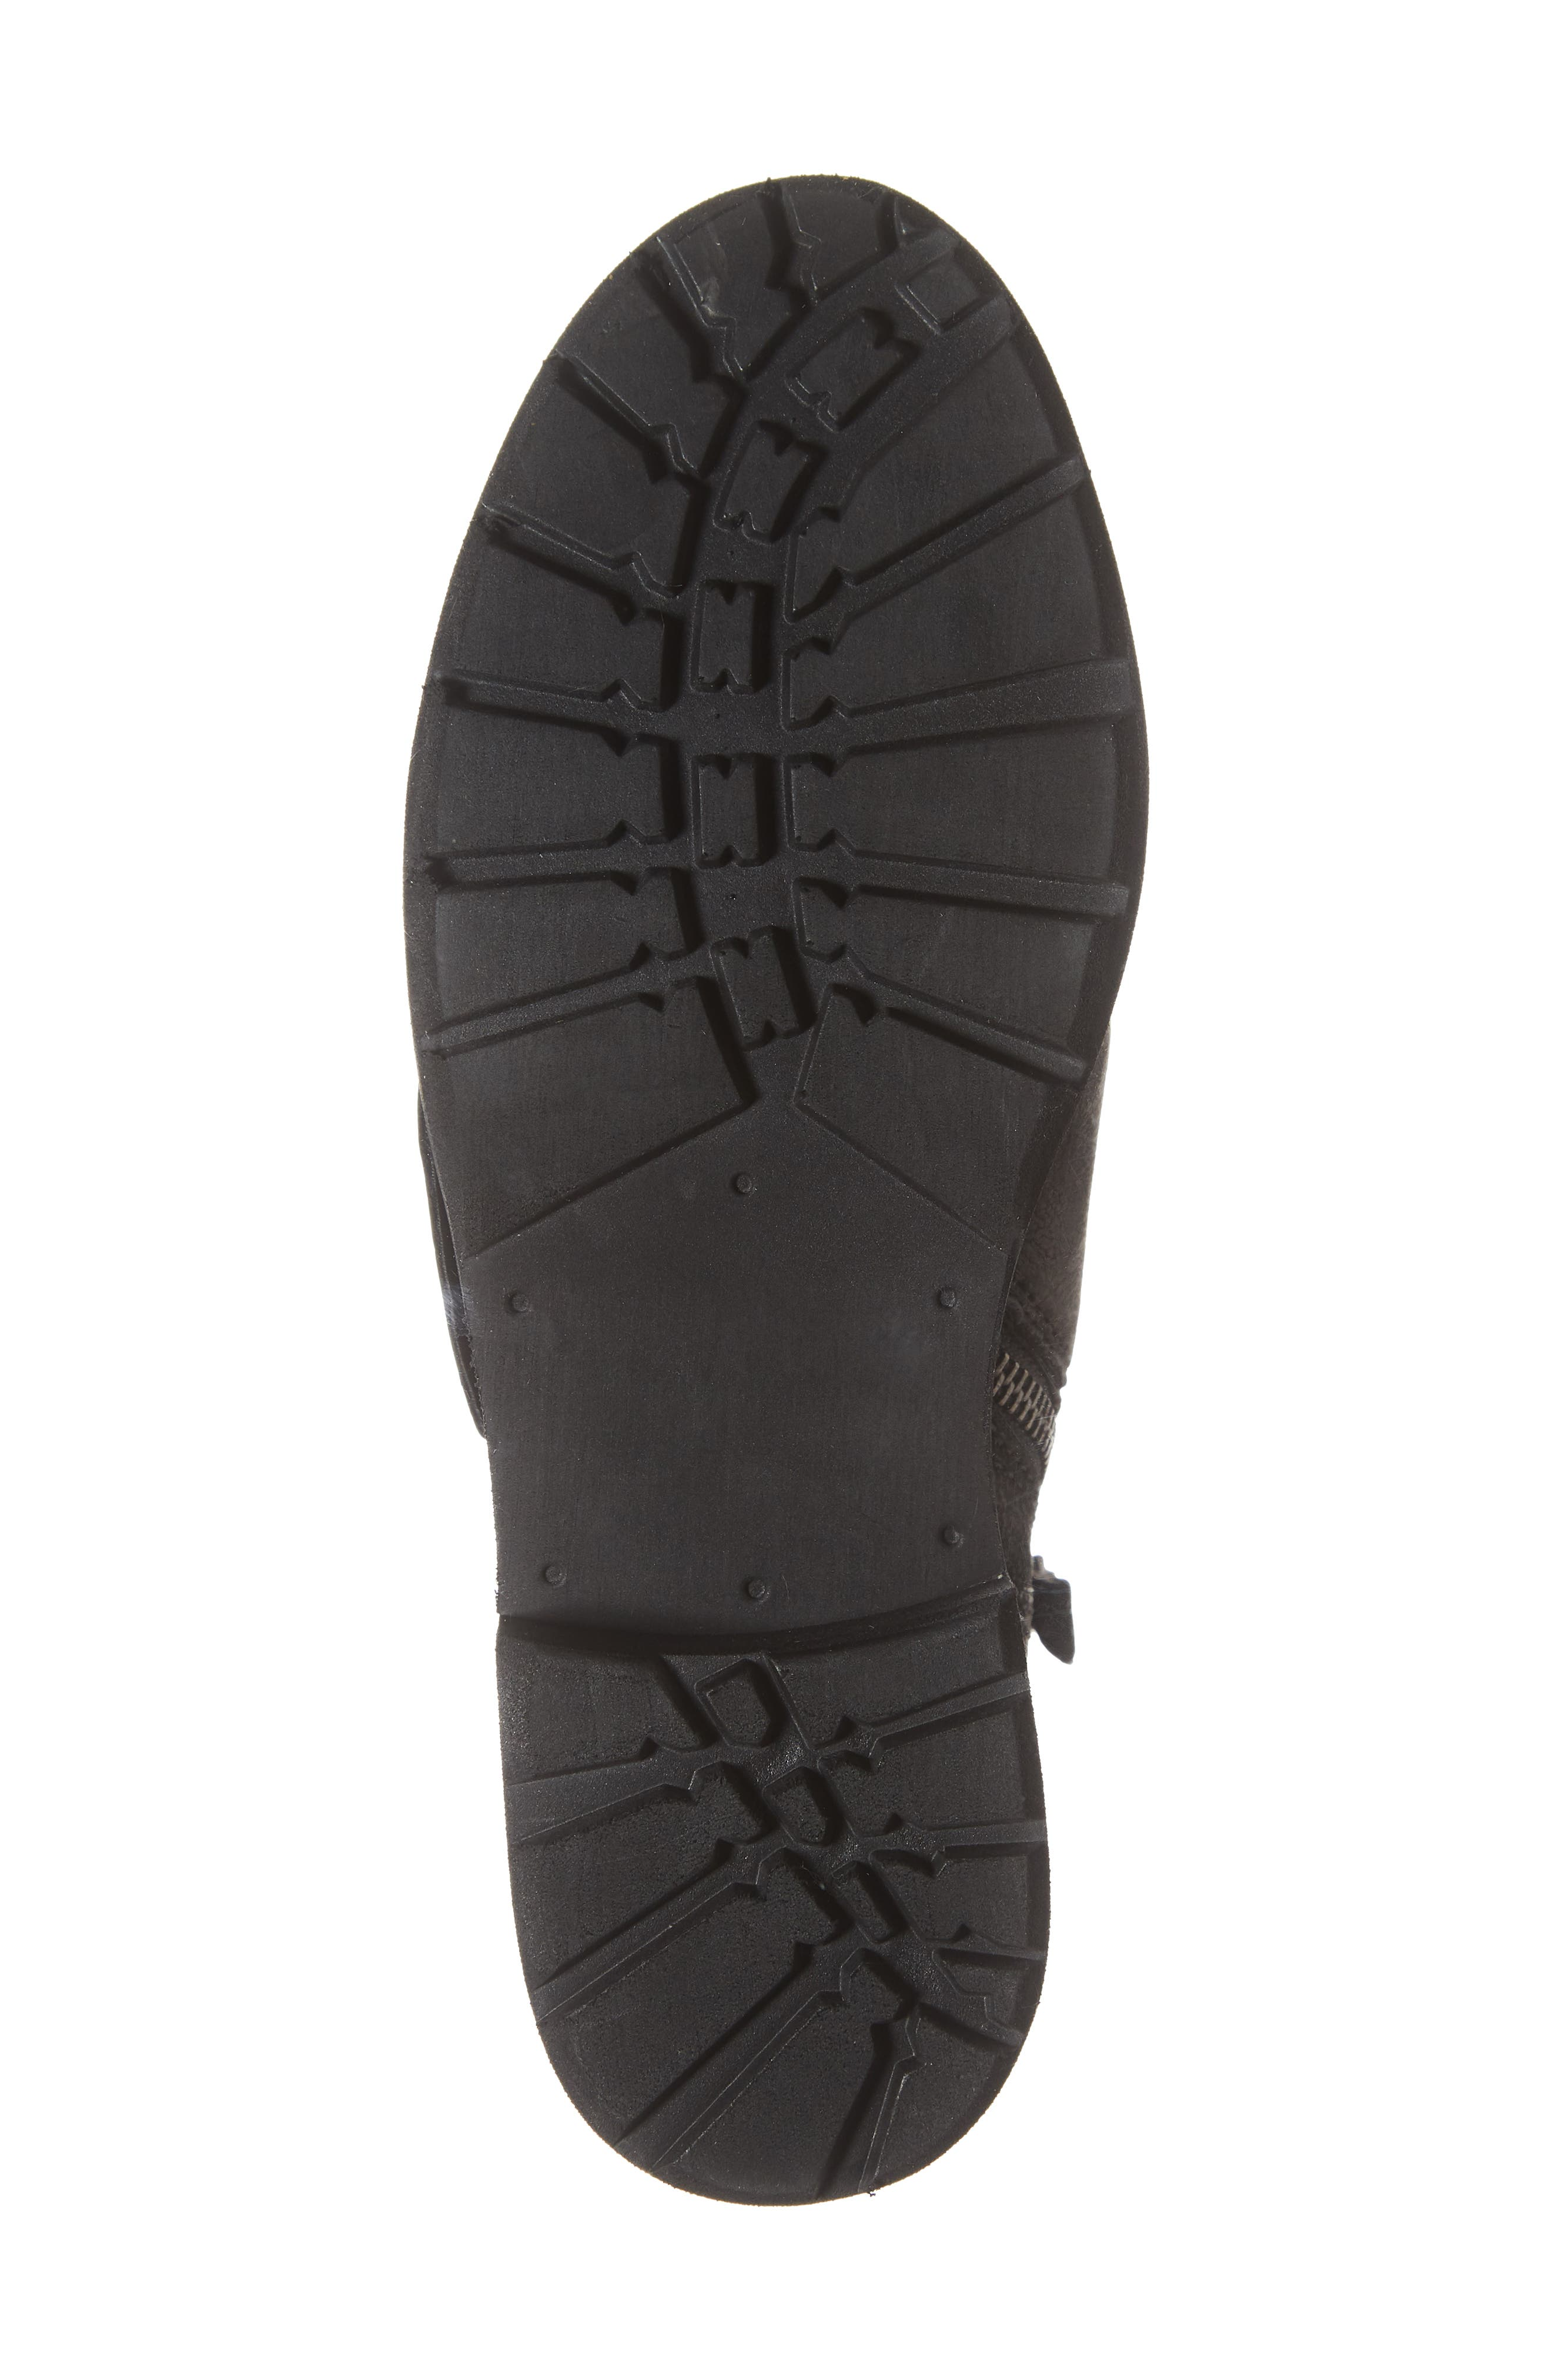 Frontage Bootie,                             Alternate thumbnail 6, color,                             BLACK LEATHER